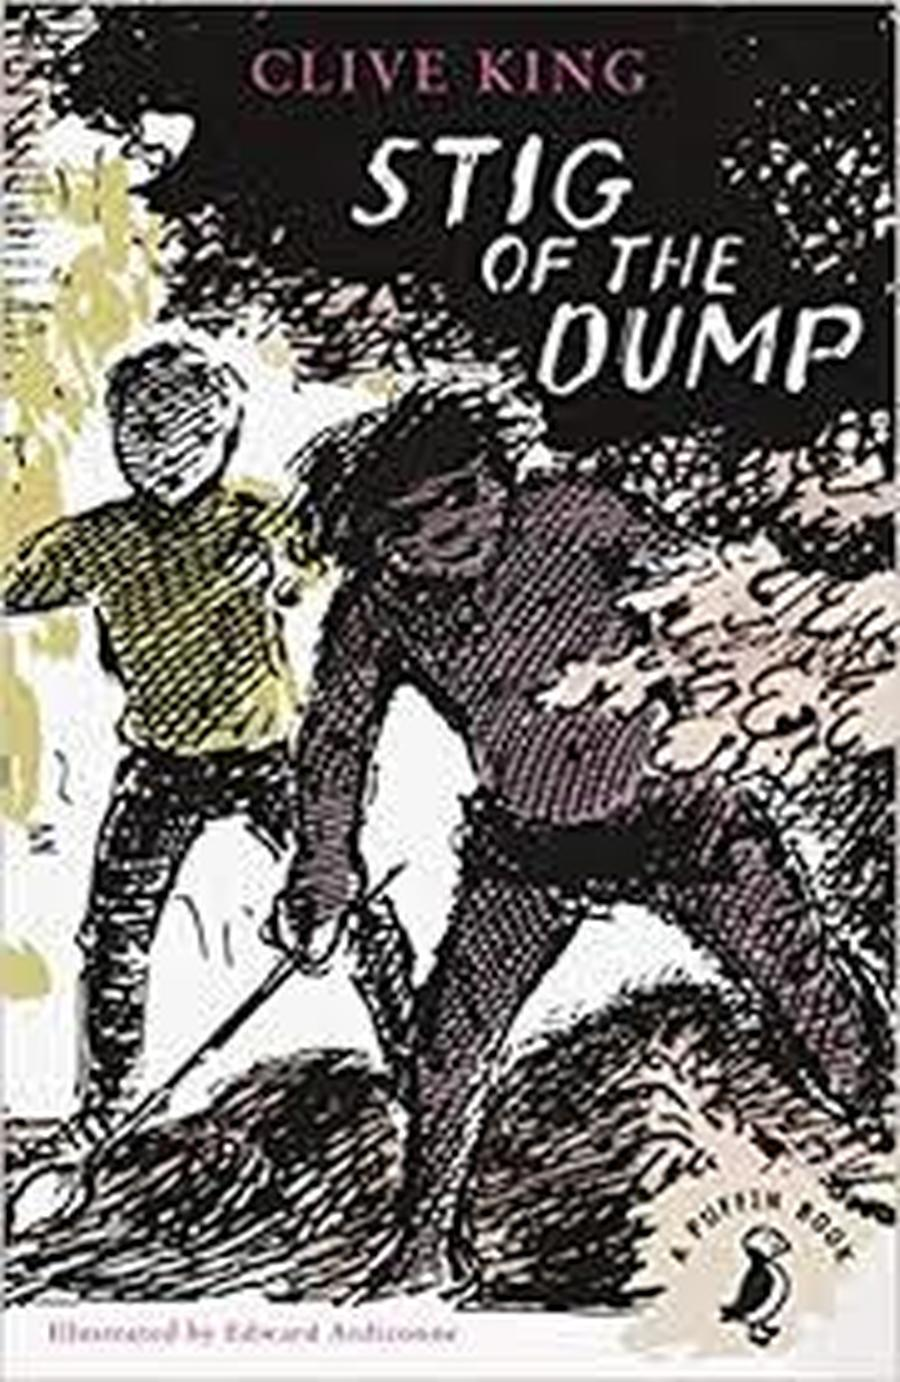 Stig of the Dump- Clive King